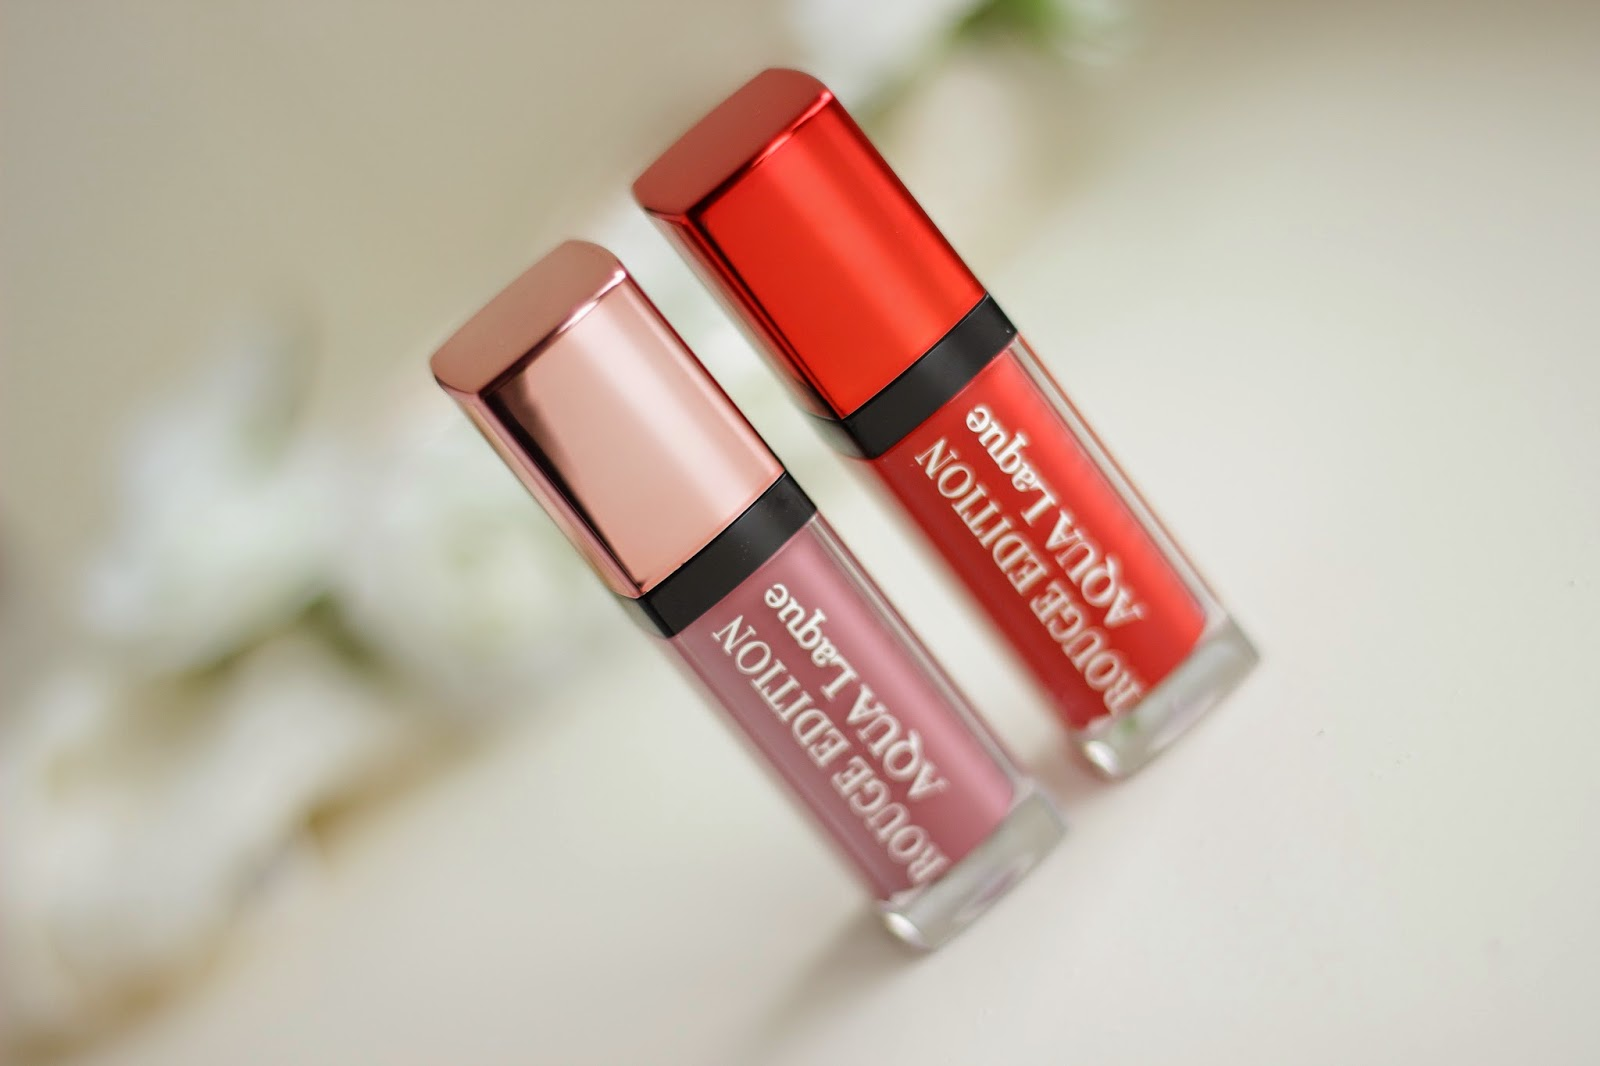 bourjois rouge edition aqua laque review swatches